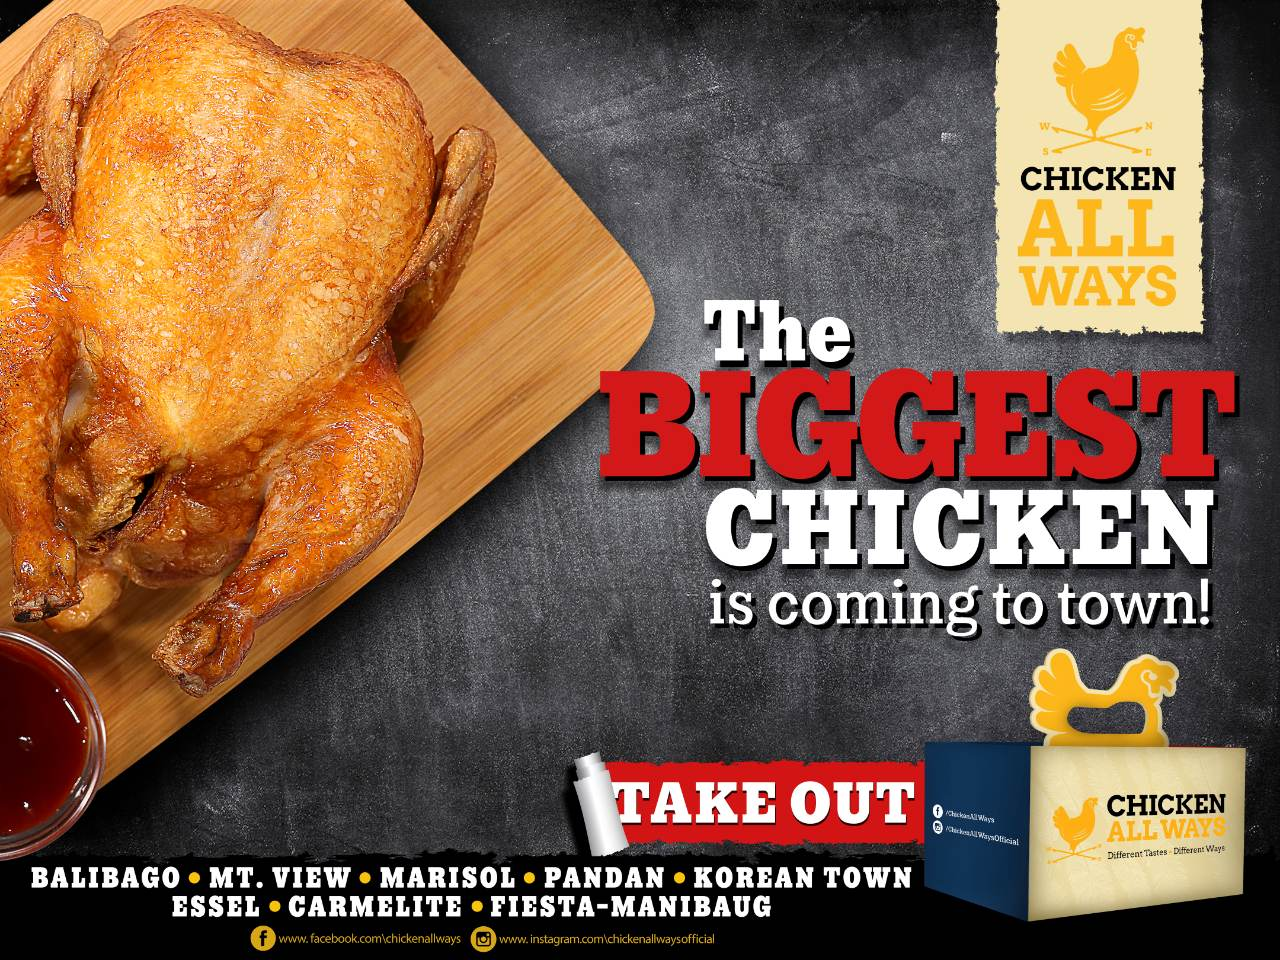 Chicken All Ways Pampanga: Not Your Regular Roasted Chicken